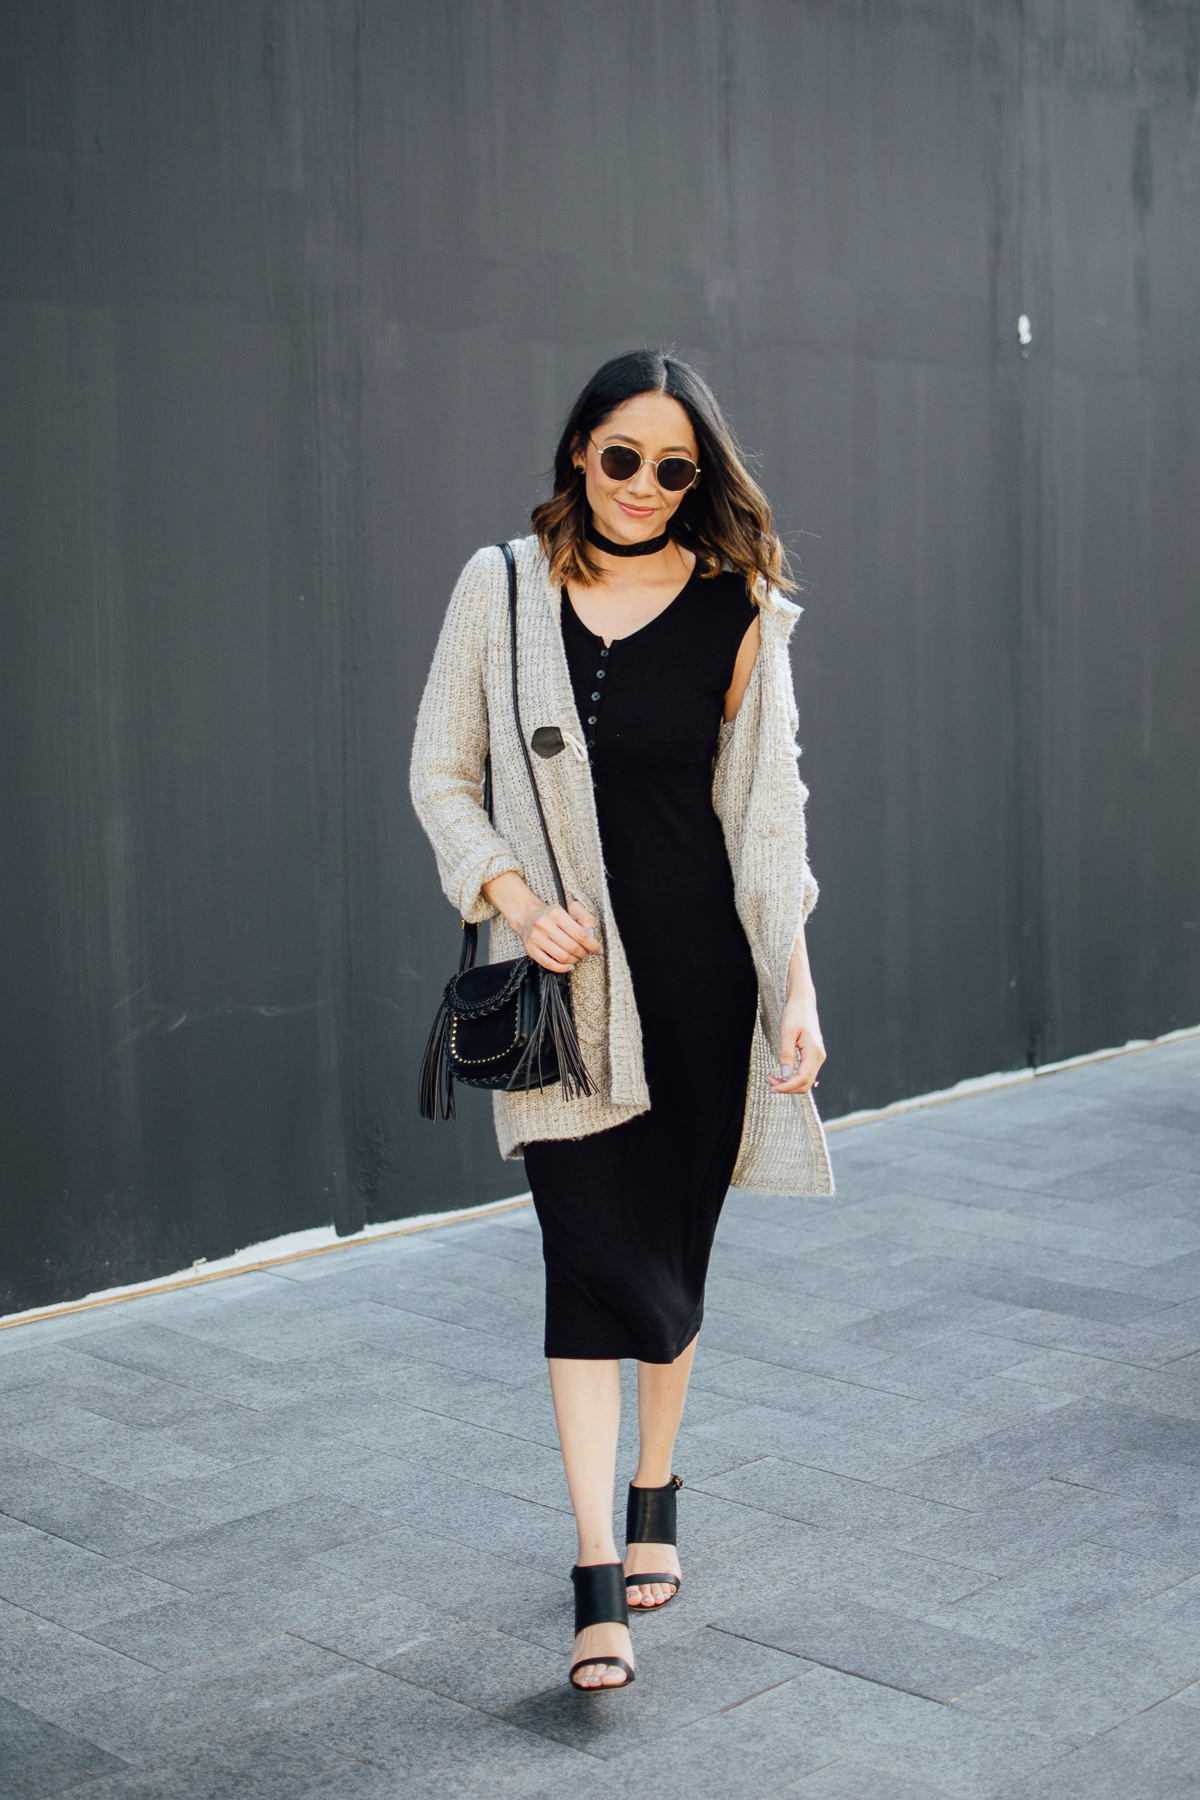 Lilly Beltran of Daily Craving in chic fall look with a black midi dress and beige cardigan